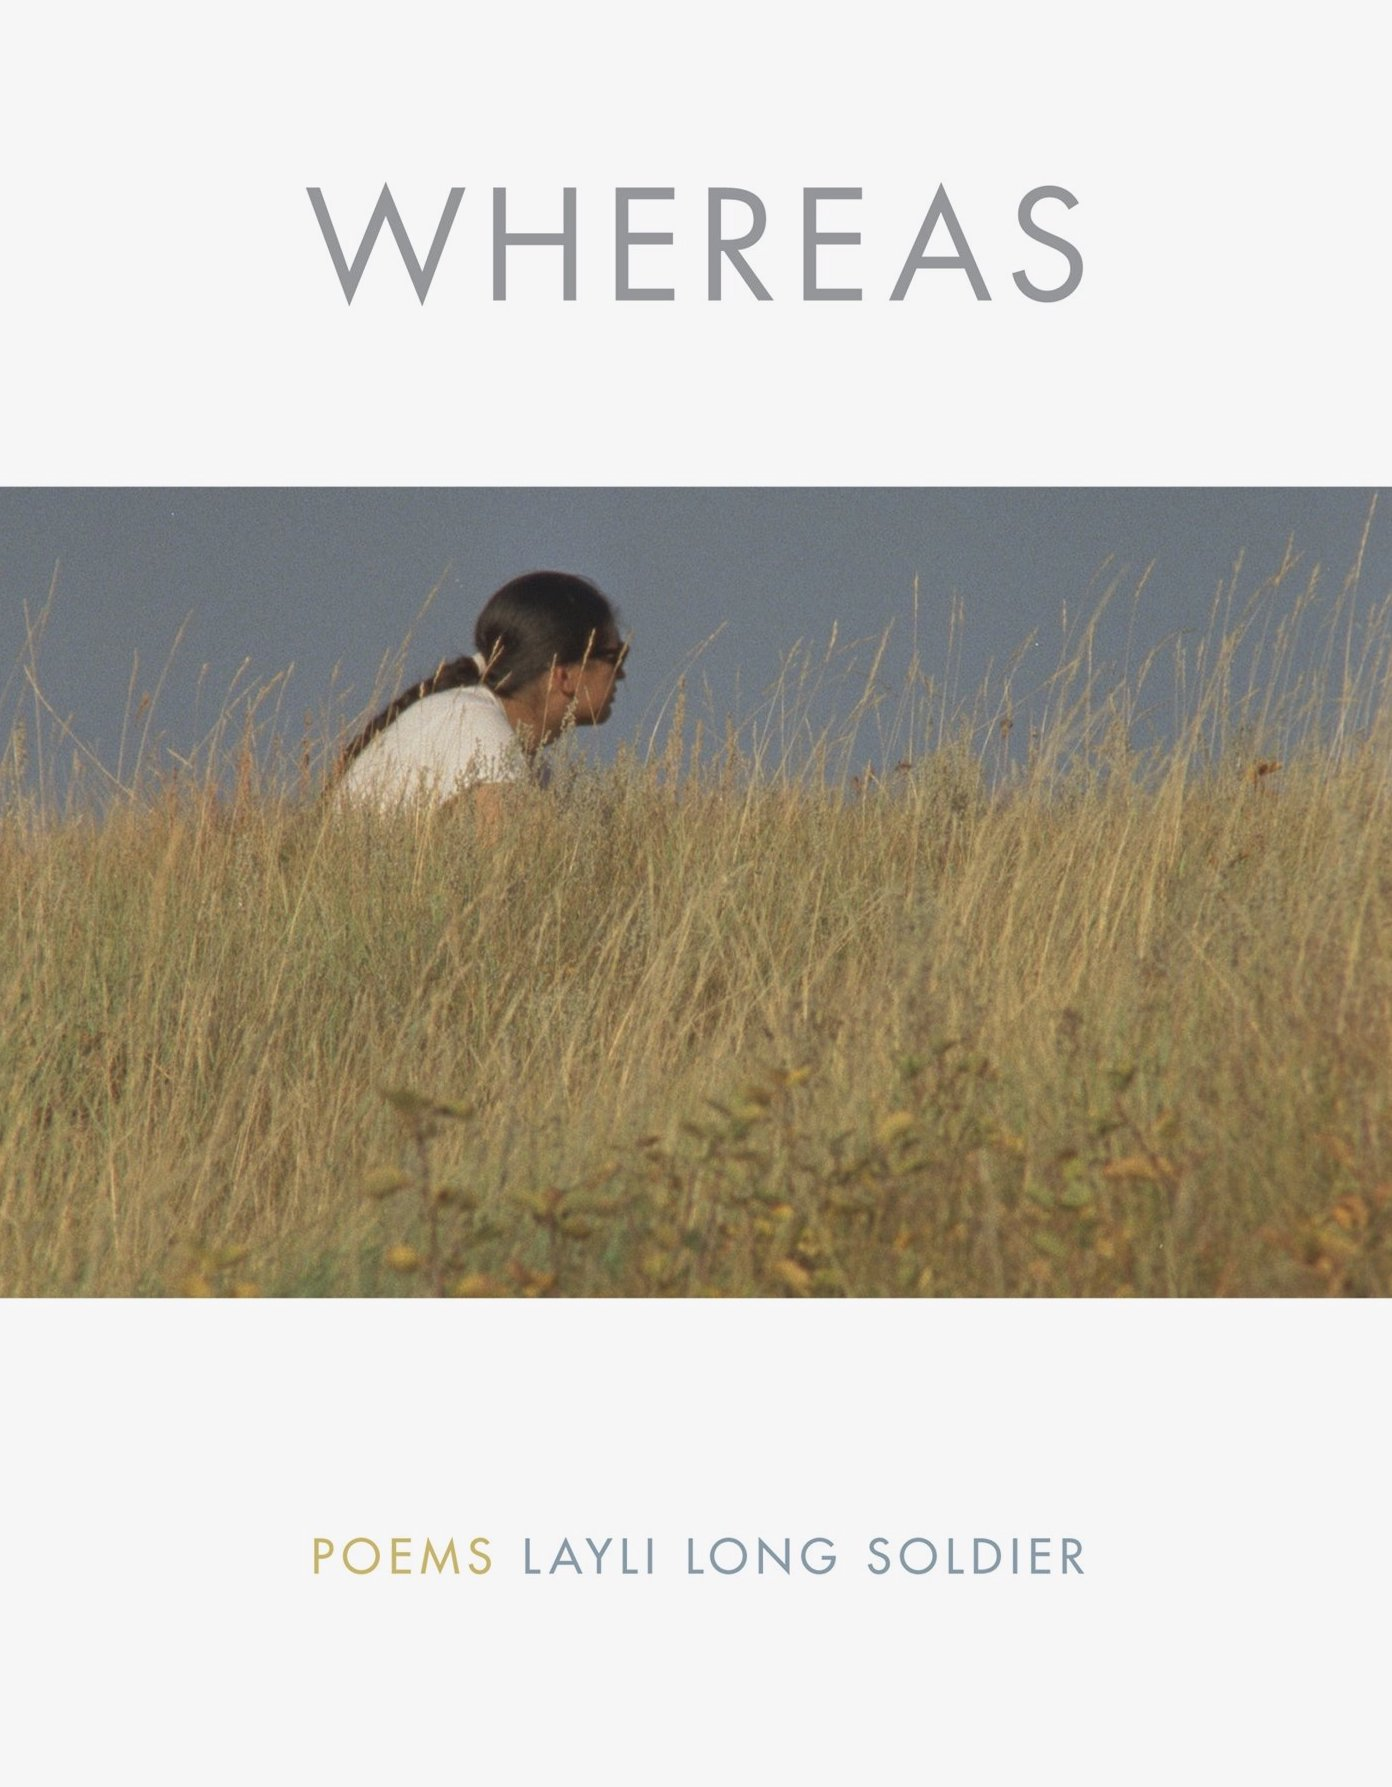 Books by Native Authors - Whereas by Layli Long Soldier